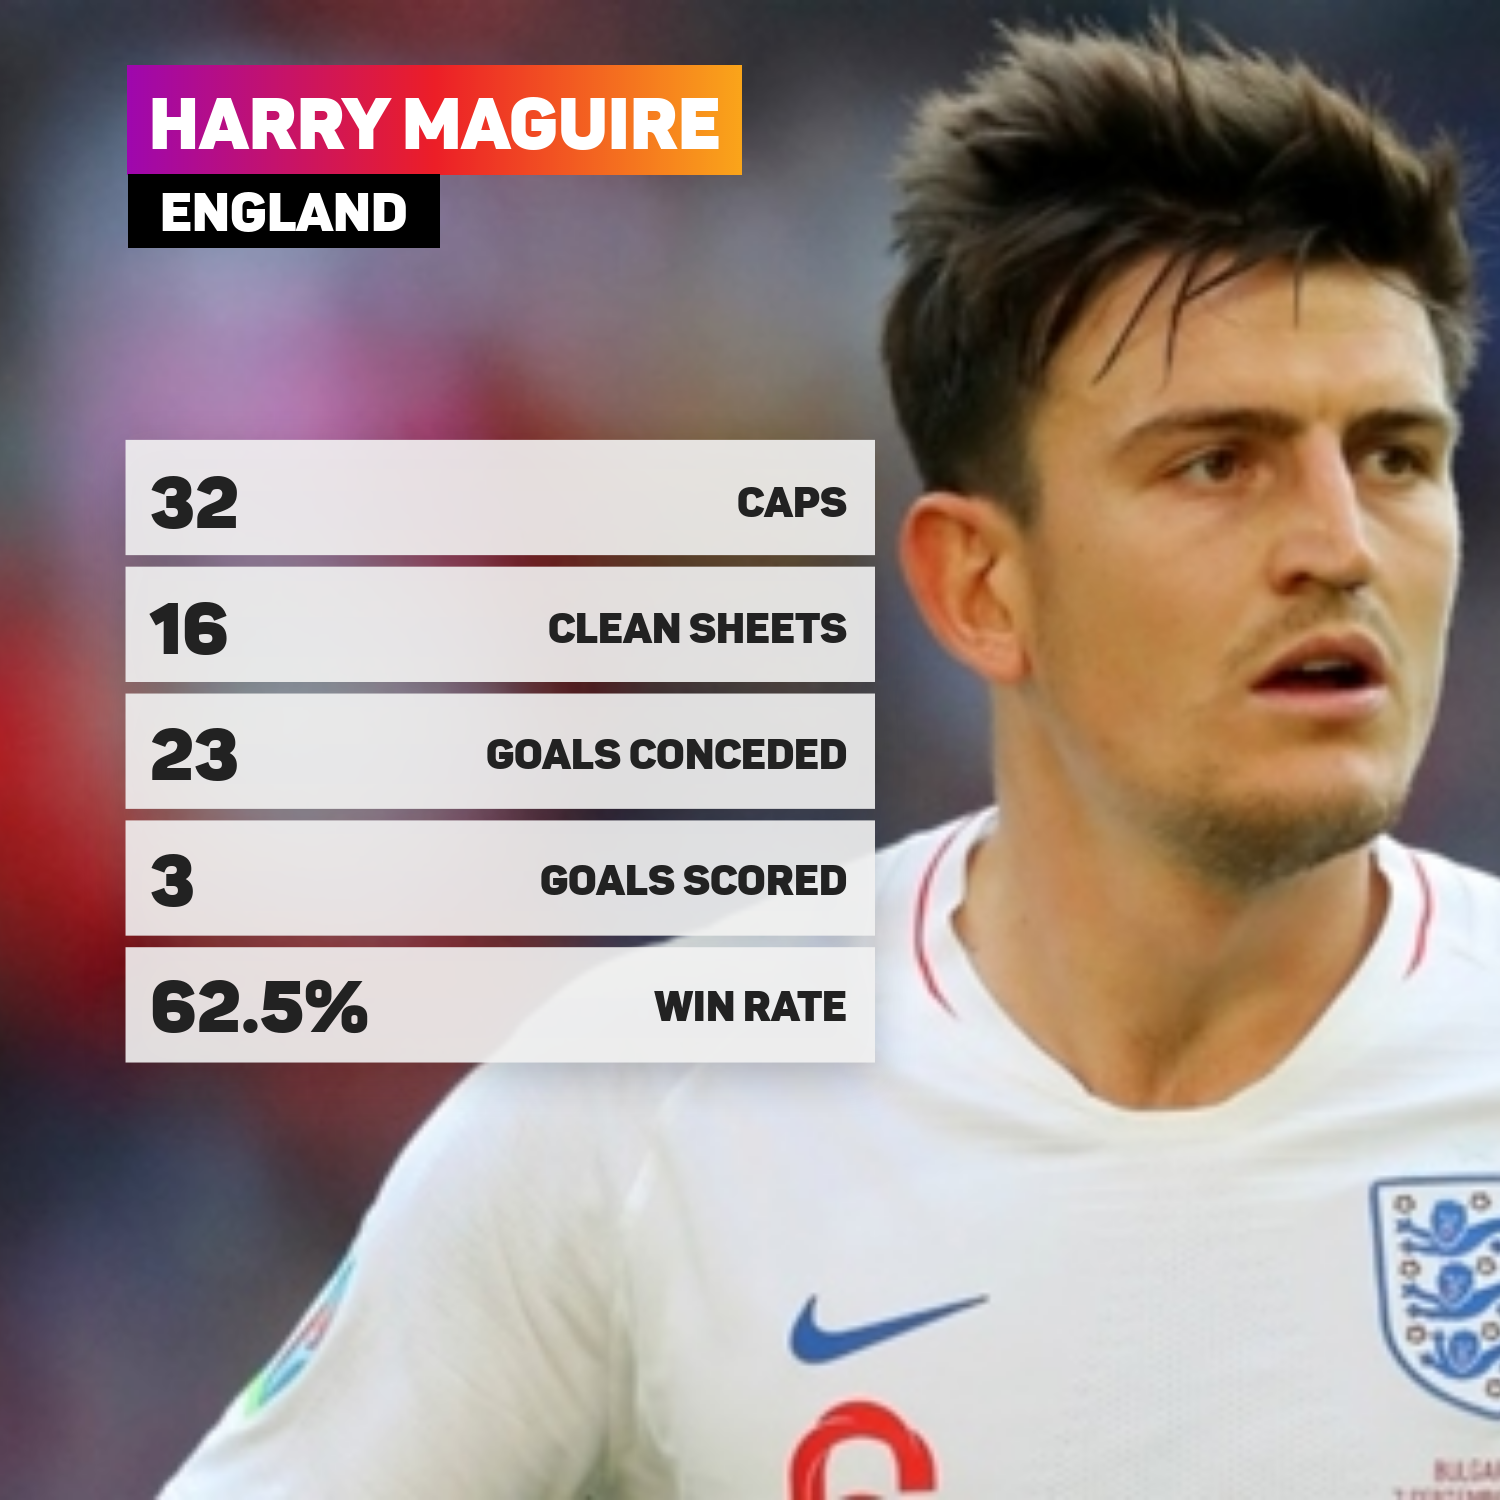 Harry Maguire England stats